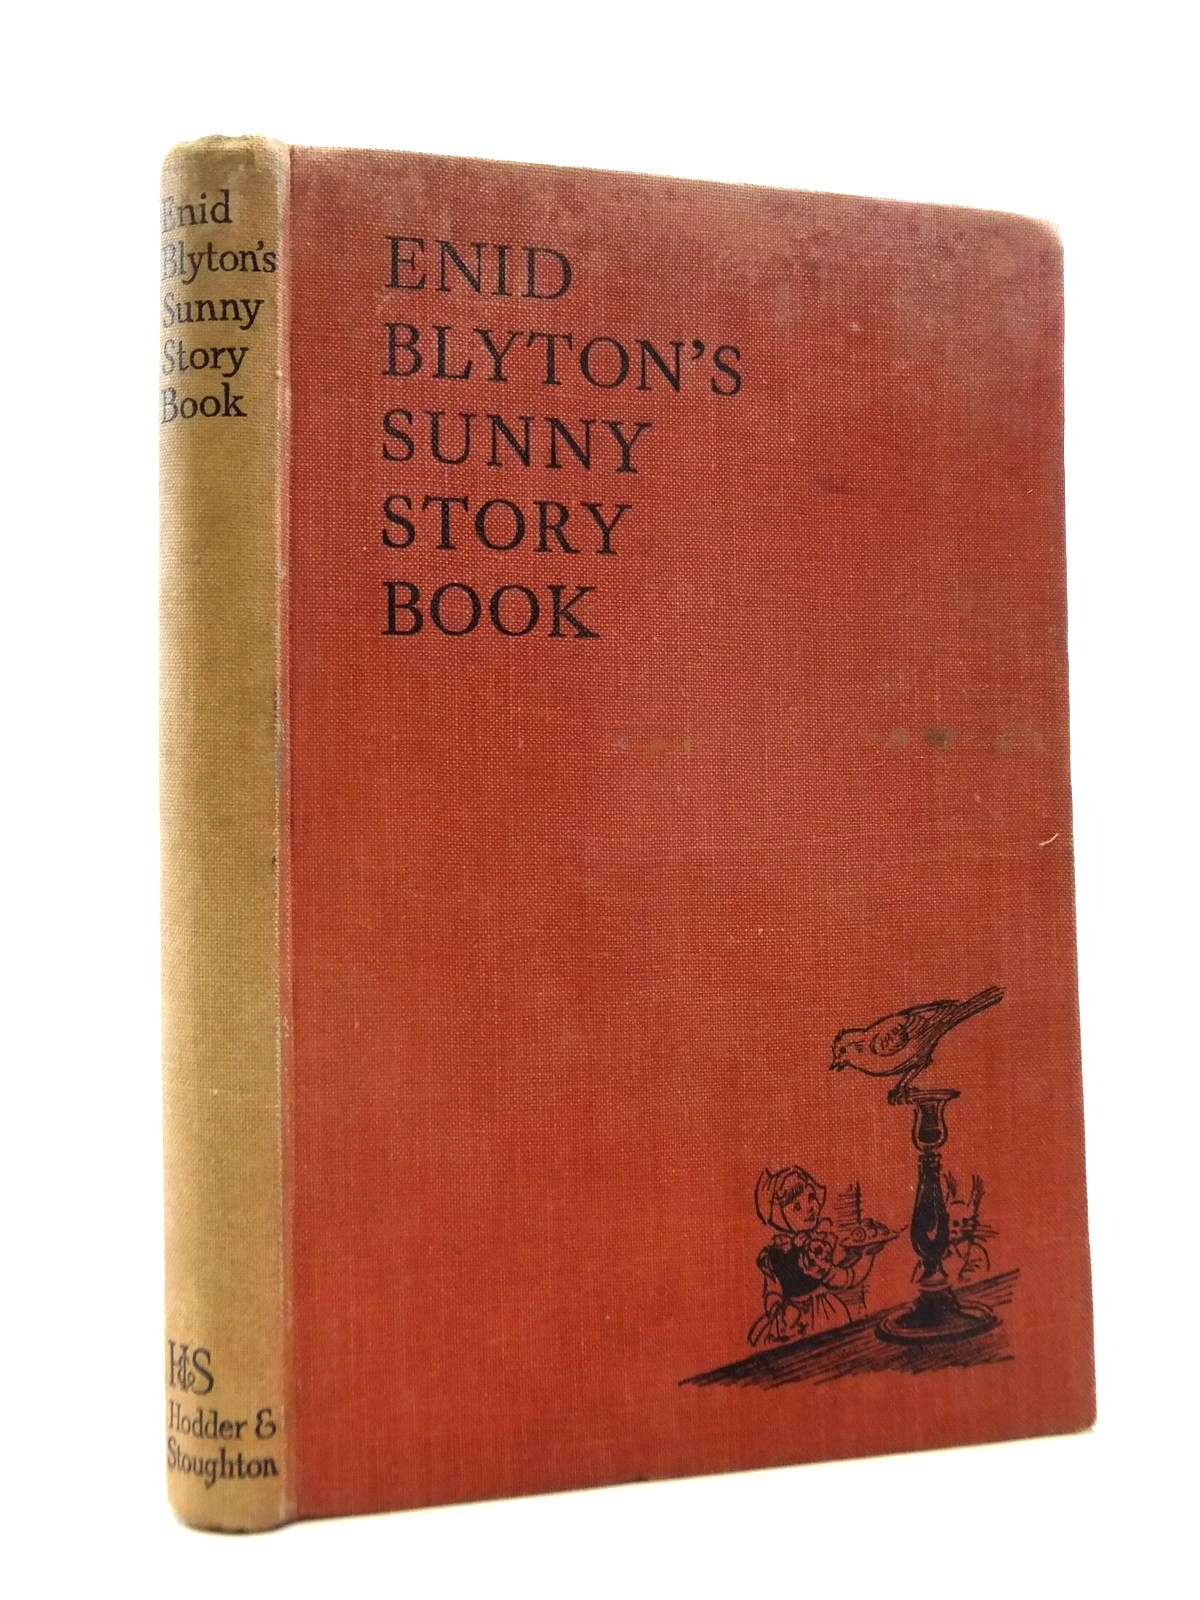 Photo of ENID BLYTON'S SUNNY STORY BOOK written by Blyton, Enid illustrated by Soper, Eileen published by Hodder & Stoughton (STOCK CODE: 1208371)  for sale by Stella & Rose's Books